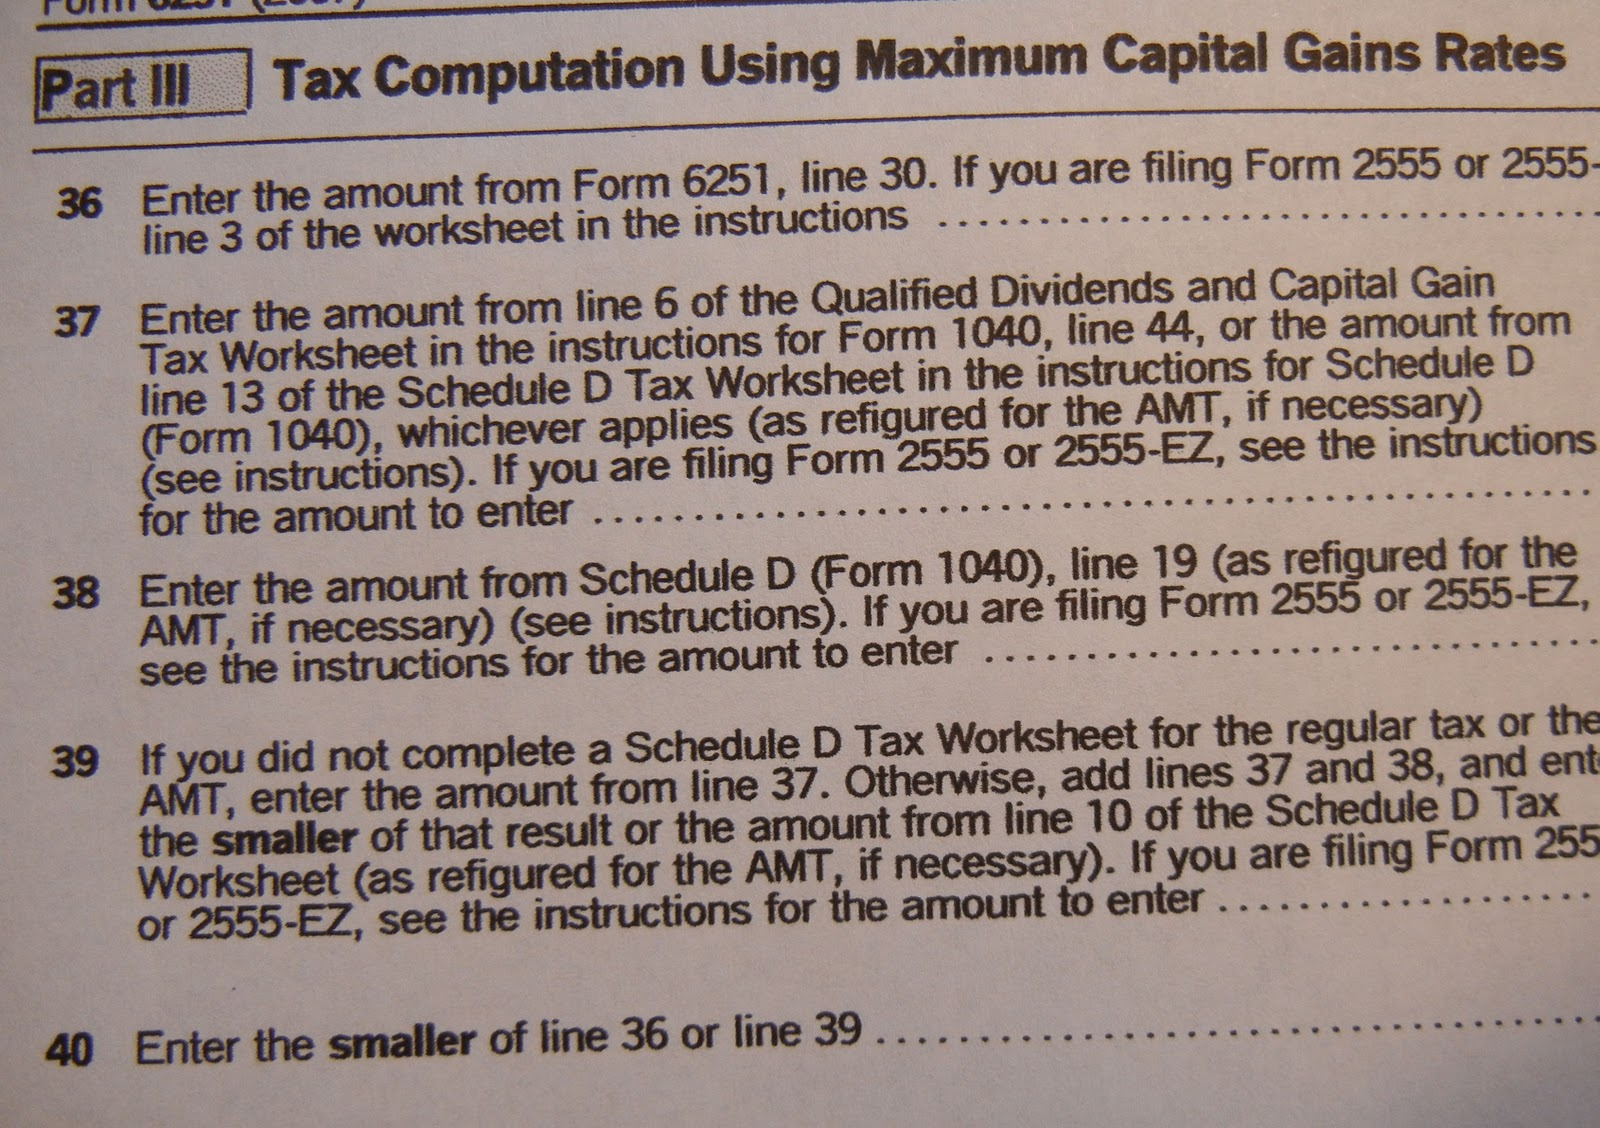 Worksheet Qualified Dividends And Capital Gain Tax Worksheet Line